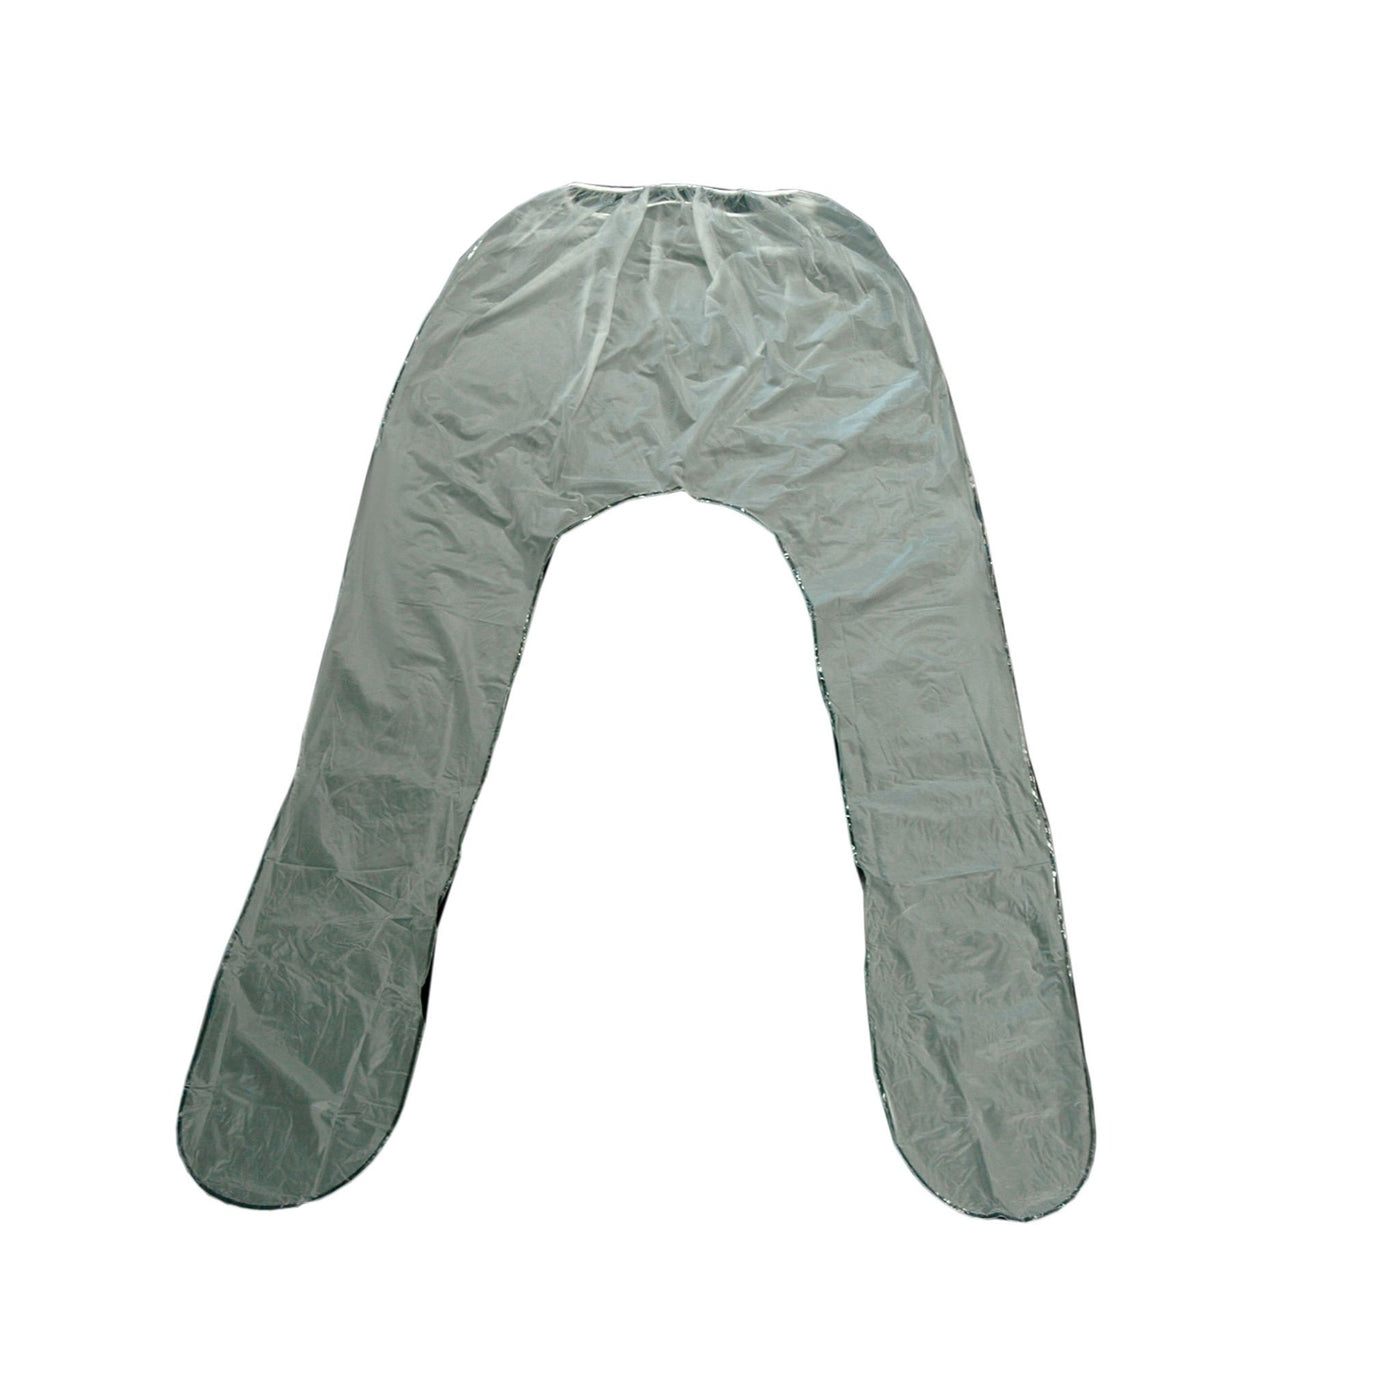 Plastic Undergarments - Lower Body-Laboratory Accessory-Mortech Manufacturing Company Inc. Quality Stainless Steel Autopsy, Morgue, Funeral Home, Necropsy, Veterinary / Anatomy, Dissection Equipment and Accessories